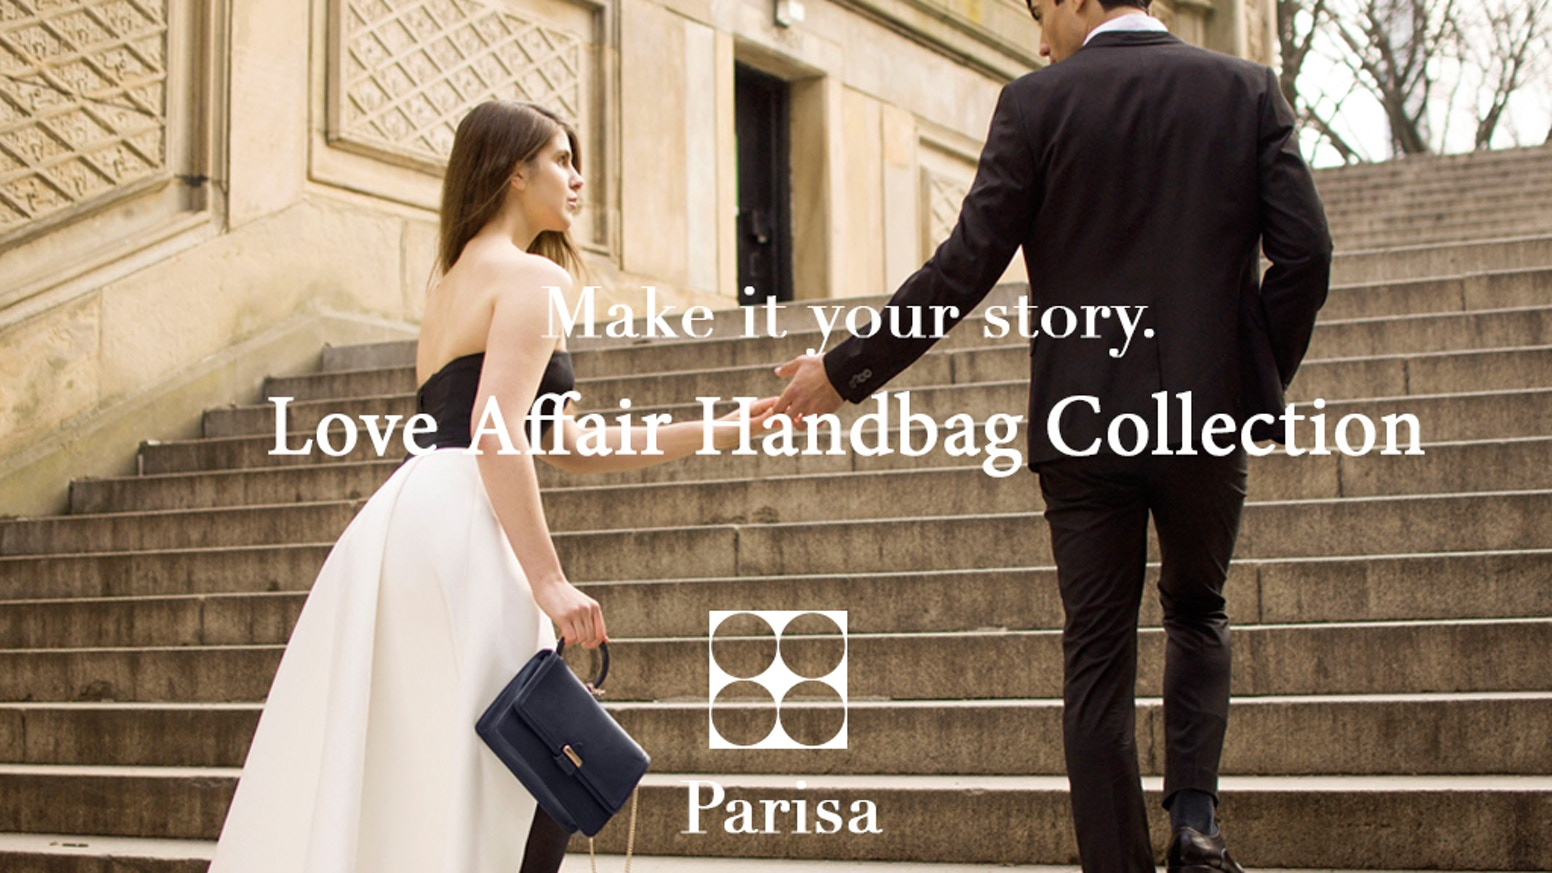 Handbag Captures Stages Of Love To Inspire Courage and Confidence.